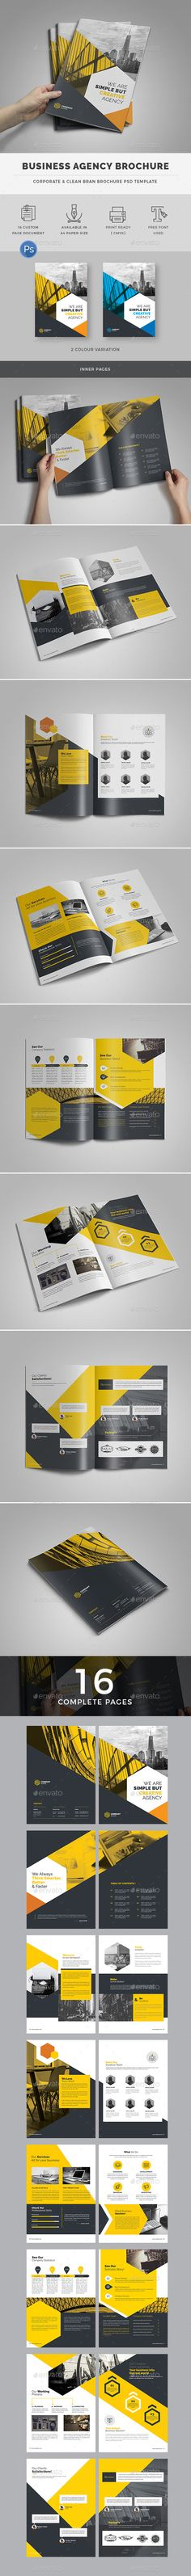 Business Agency Brochure Template | Download: https://graphicriver.net/item/business-agency-brochure-template/18999884?ref=sinzo #Brochures #Print #Templates